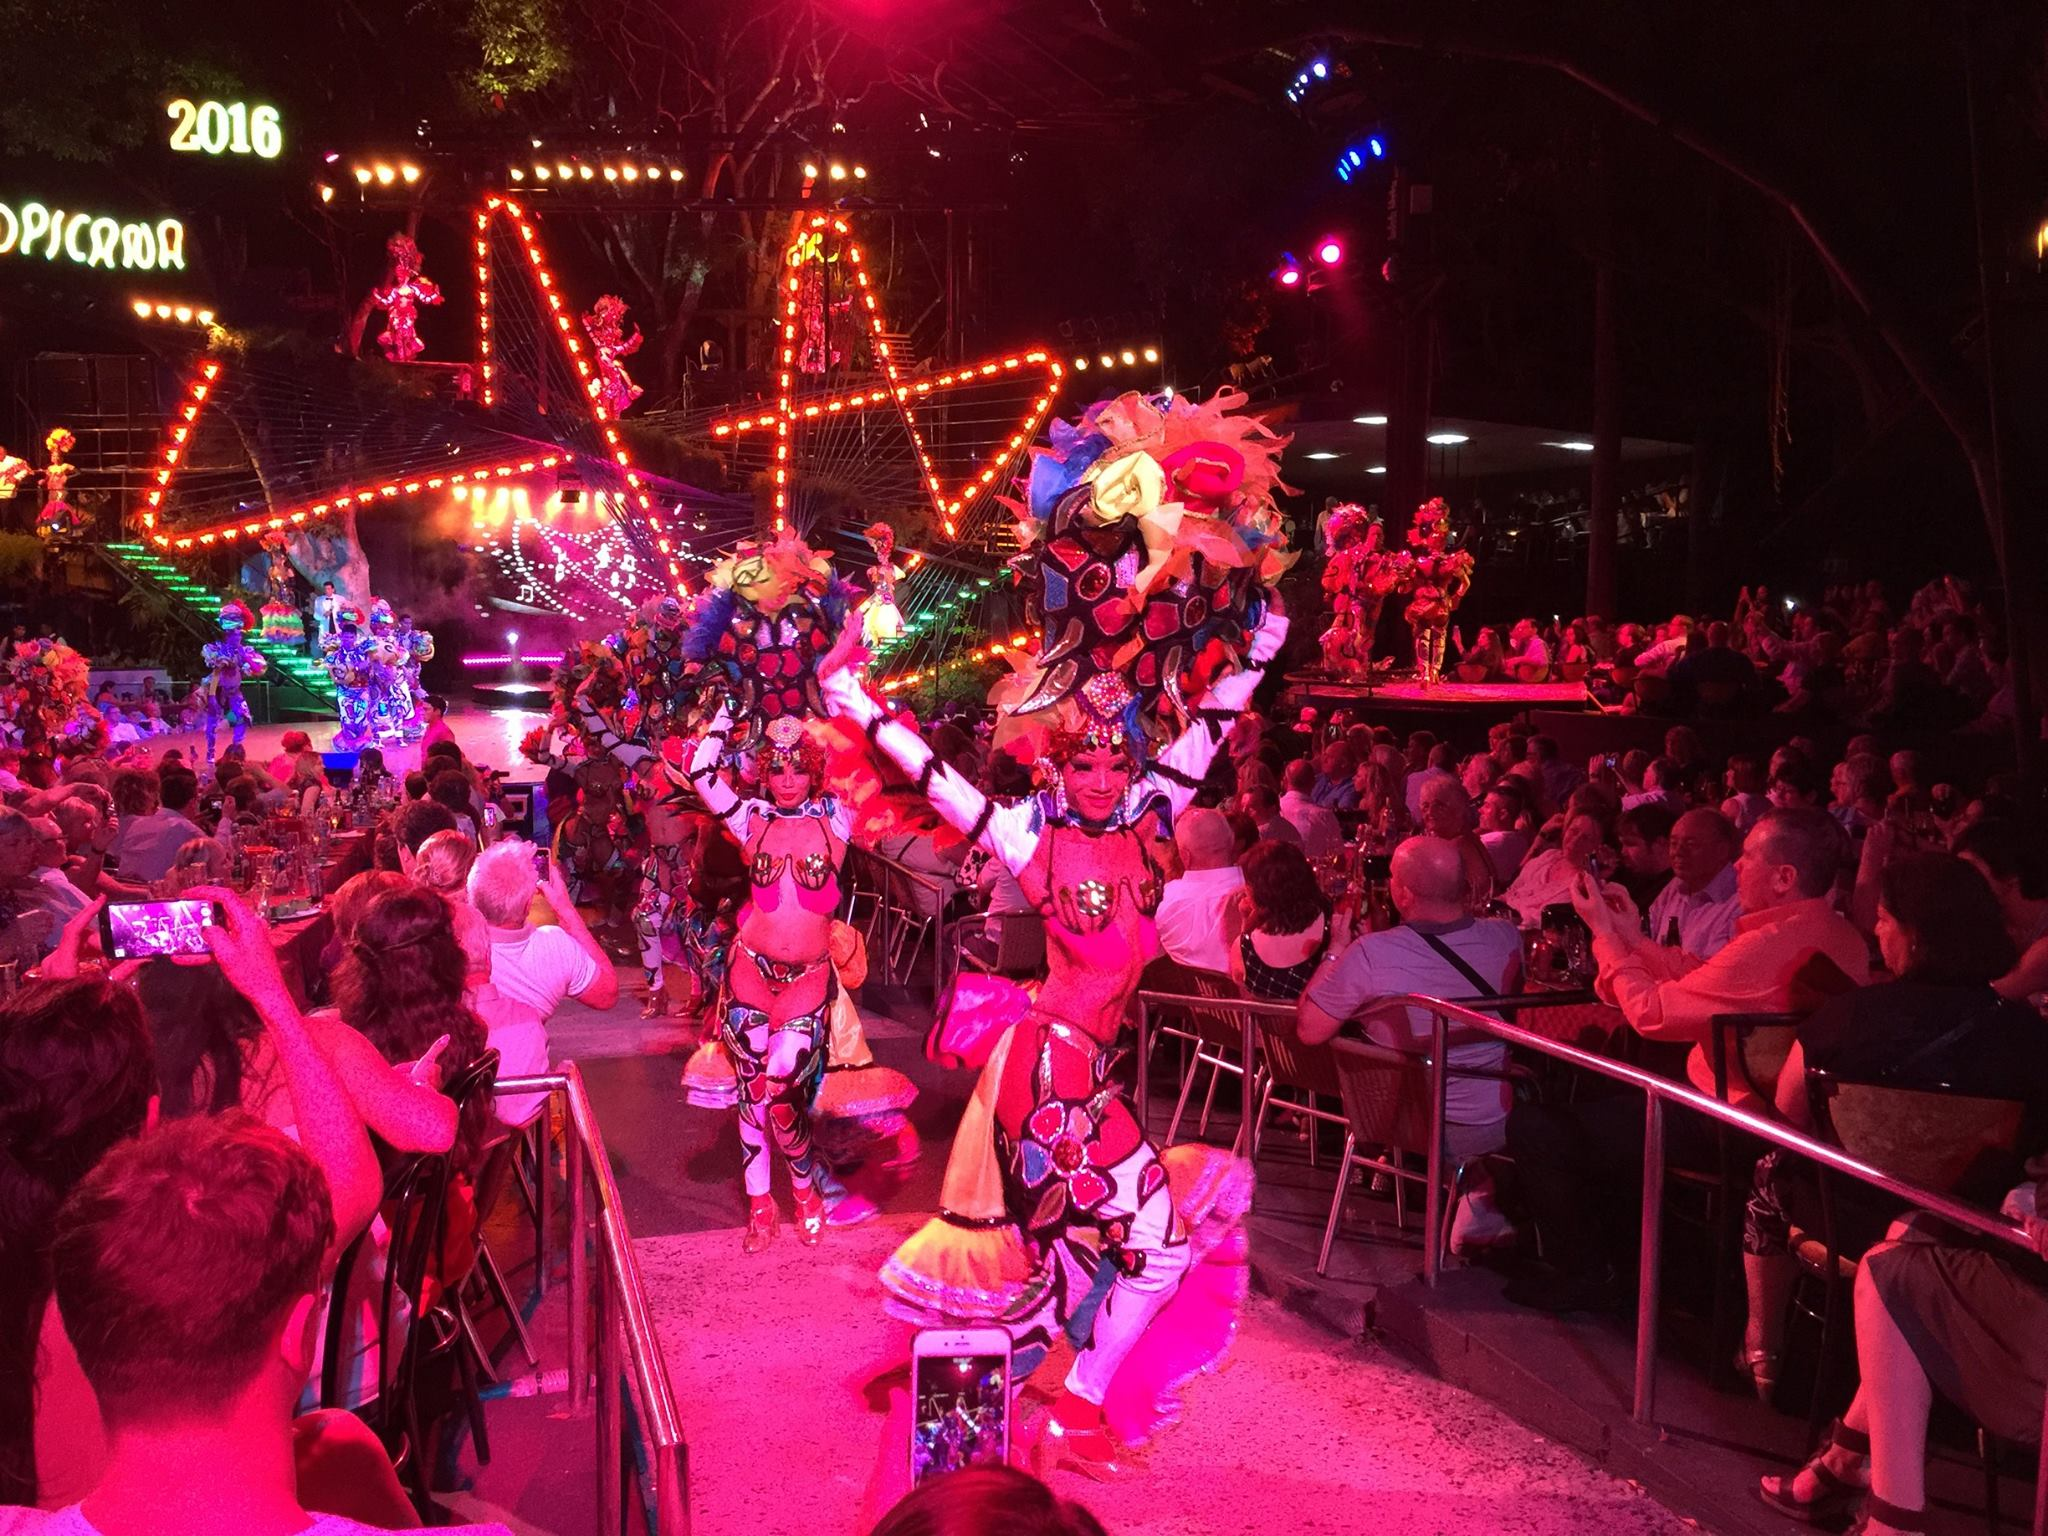 The outfits at the Tropicana were just out of this world. An amazing performance with brilliant splashes of color at every turn.